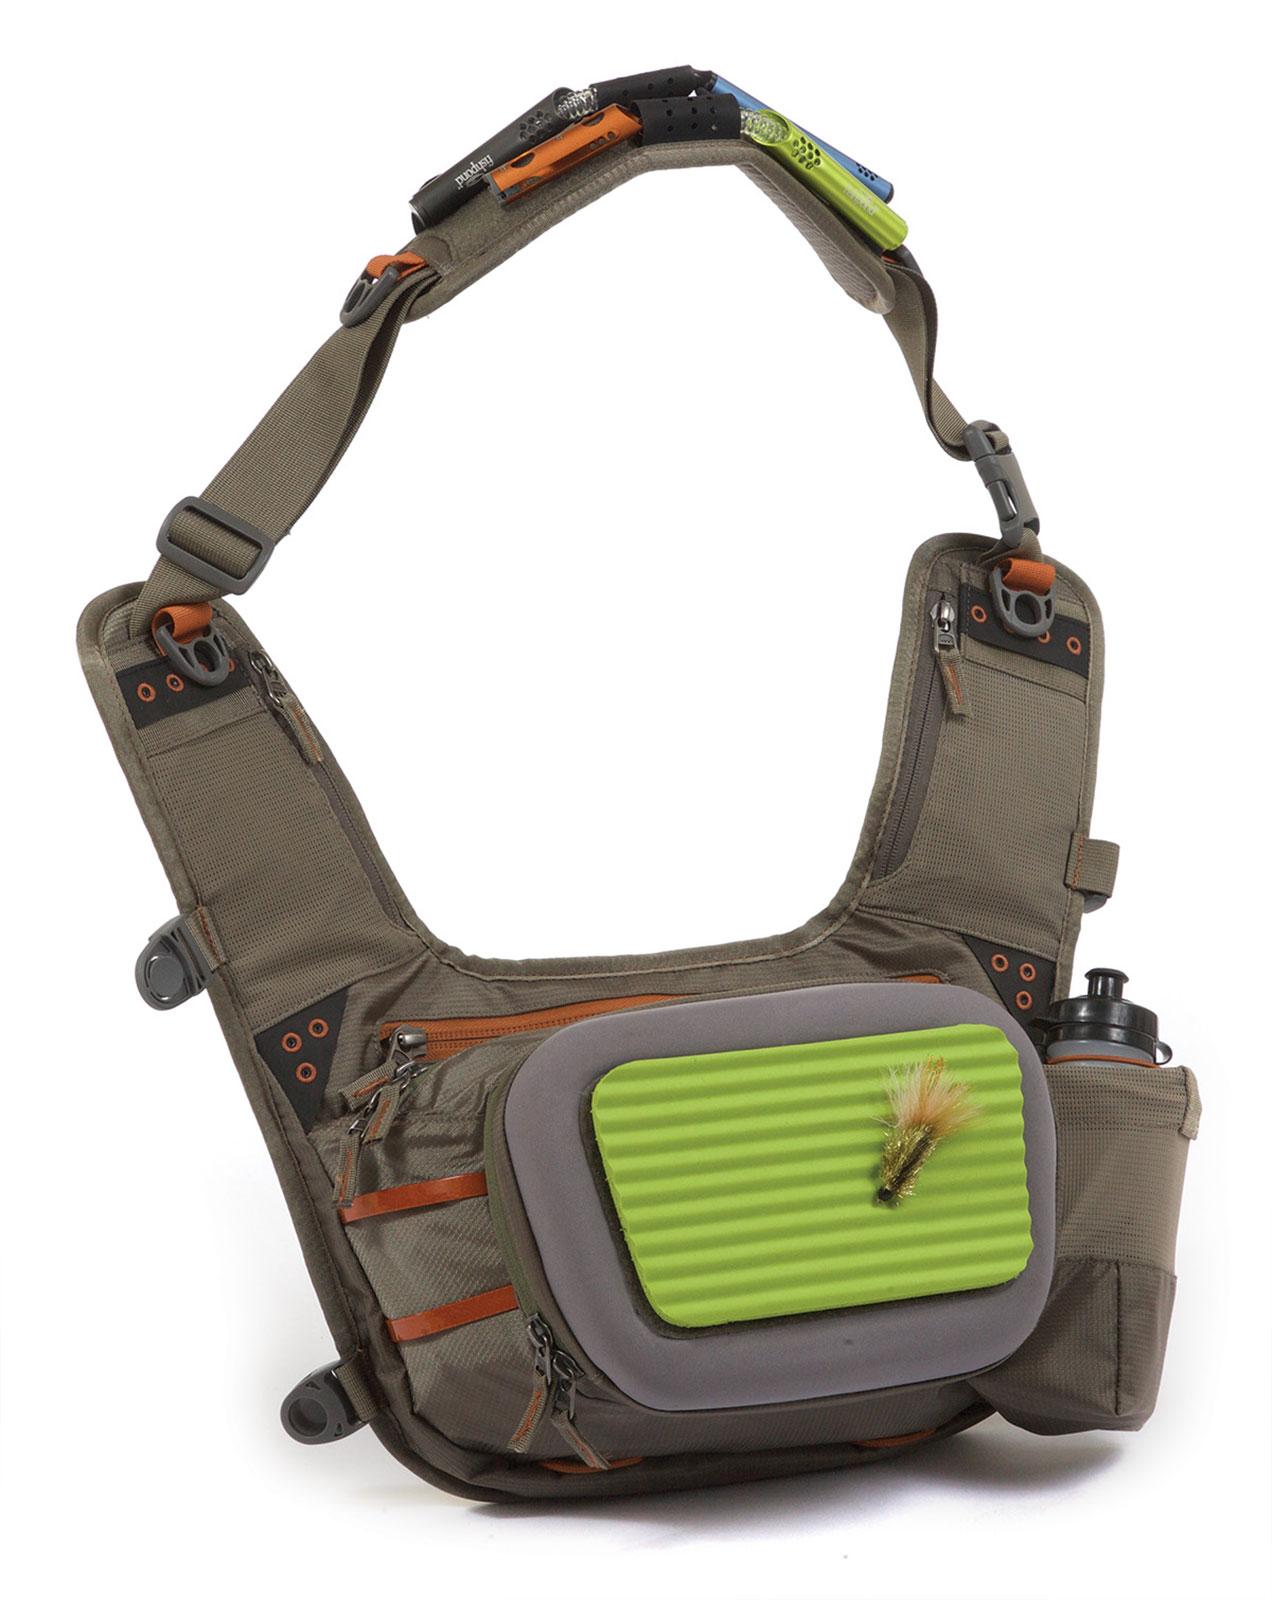 Fishpond buckhorn sling fly fishing pack shoulder bag for Fly fishing sling pack